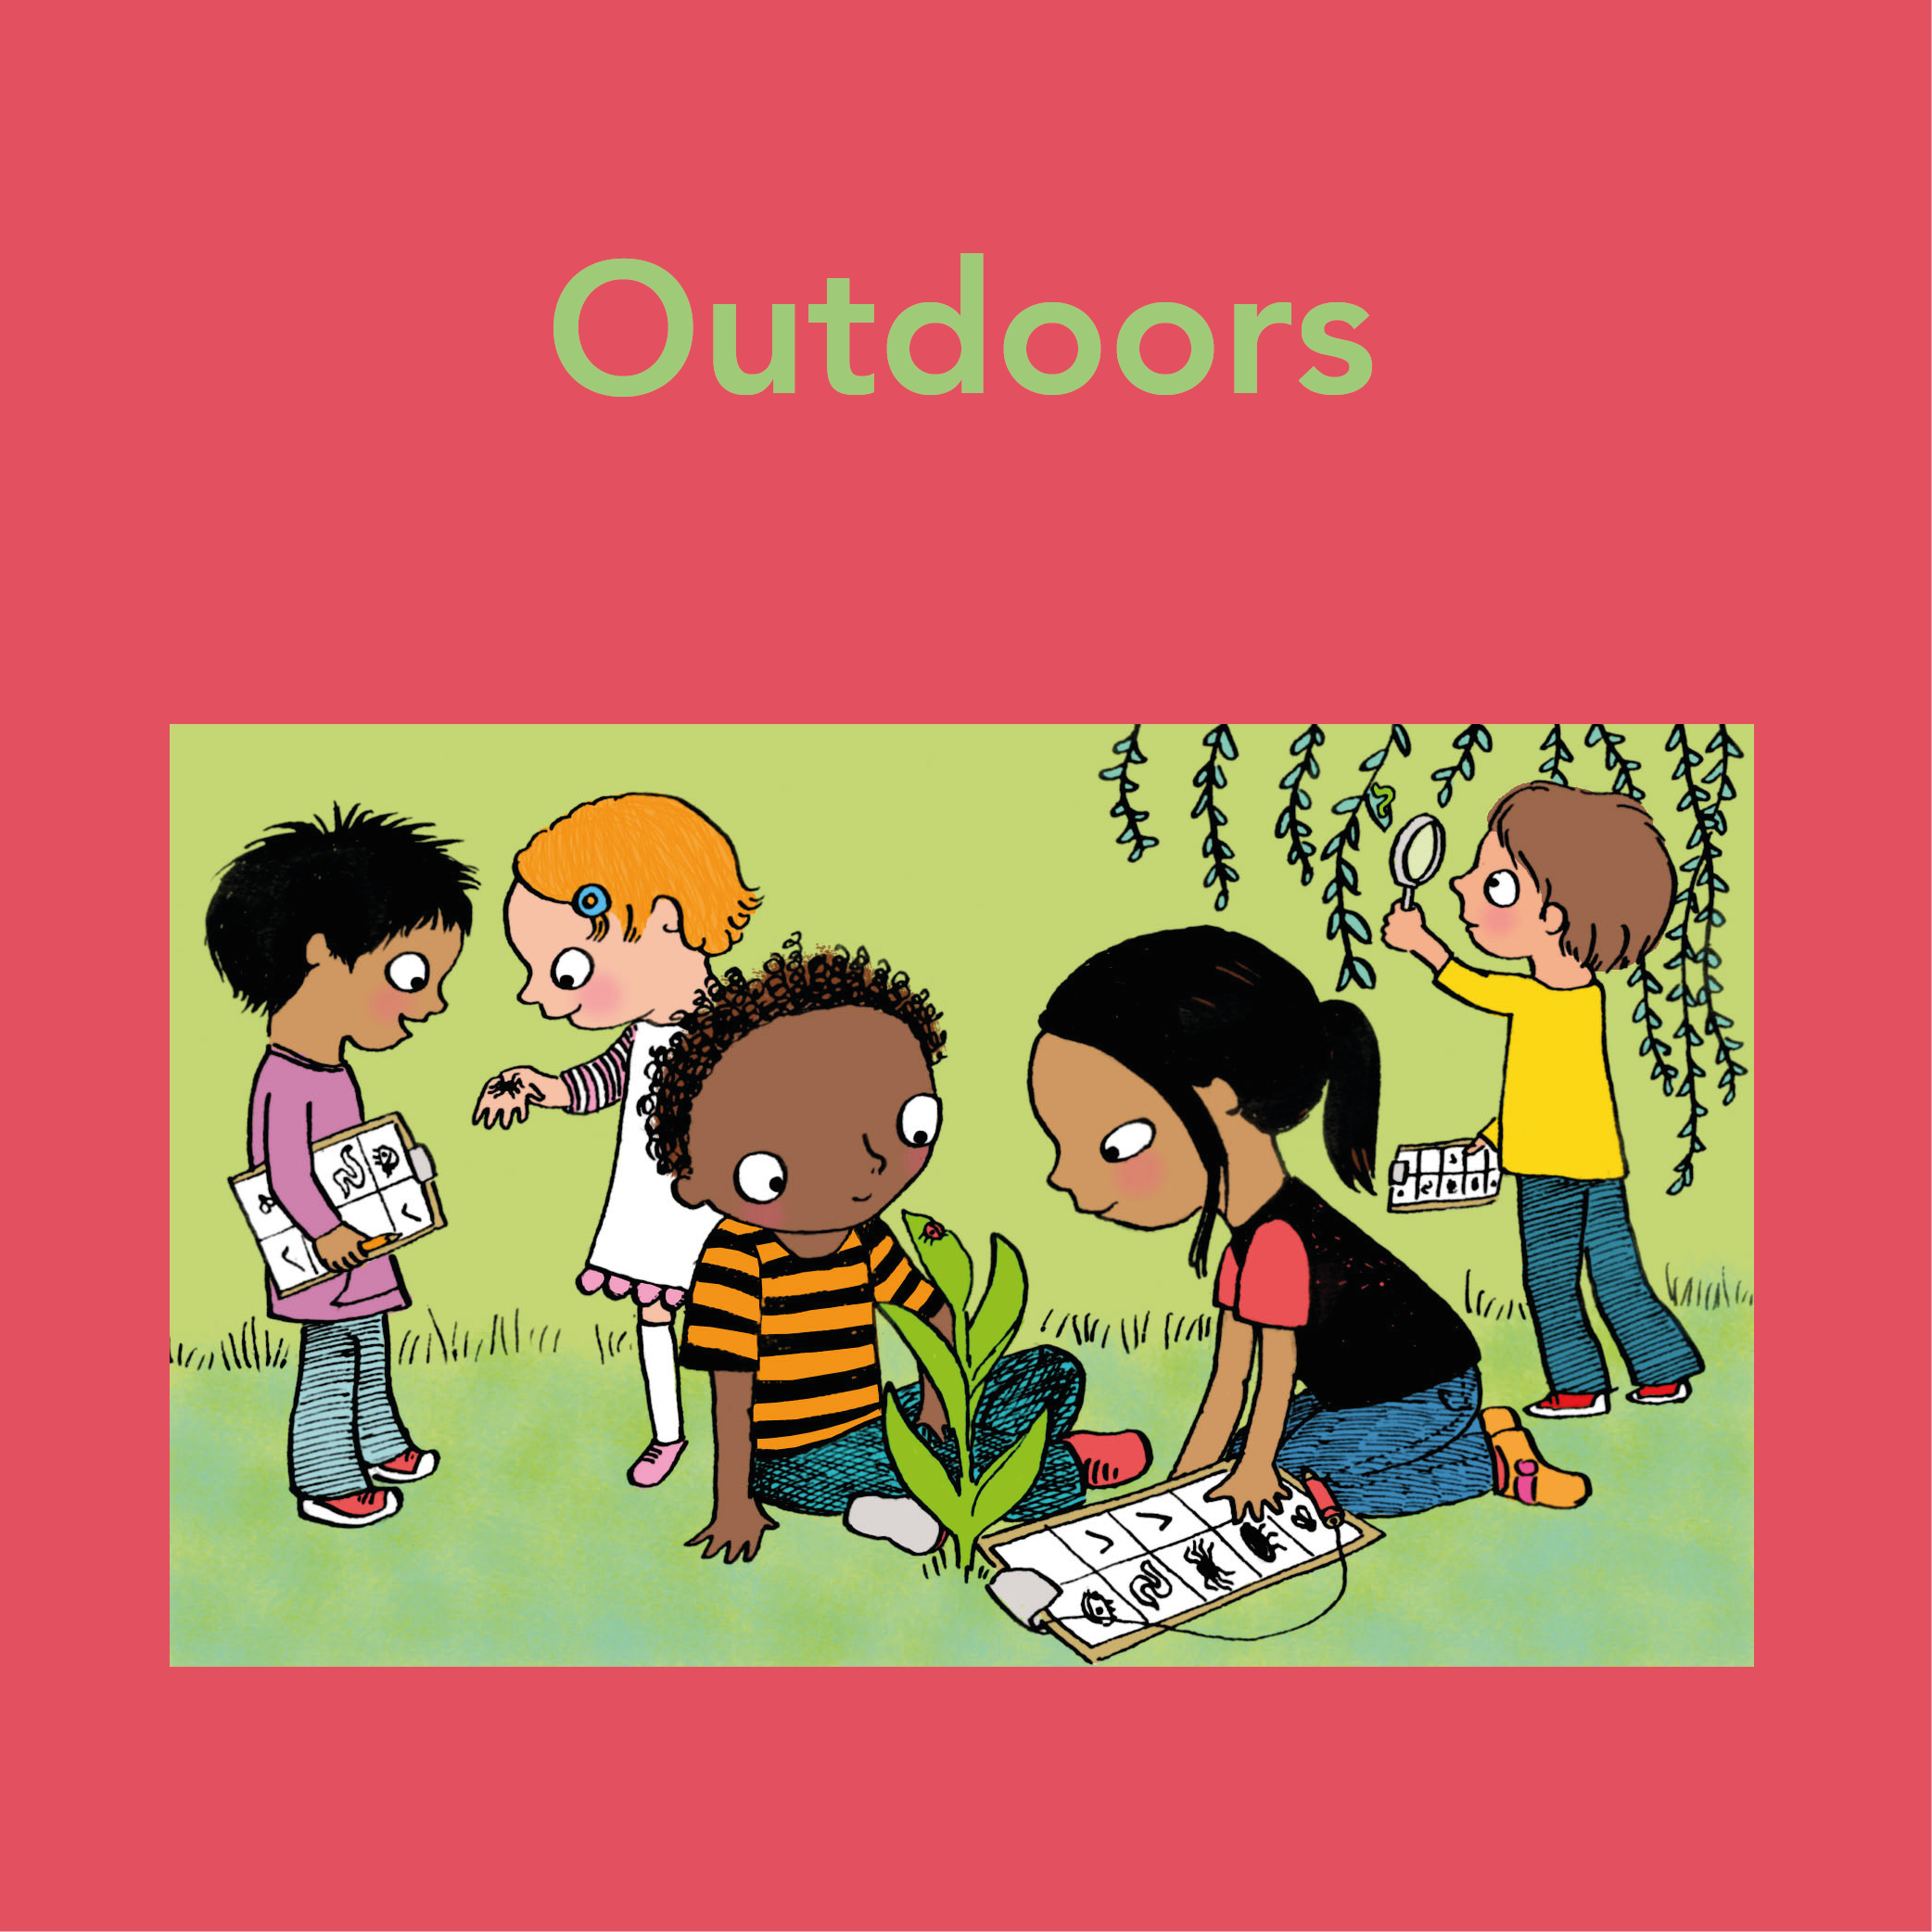 Activities for Outdoors